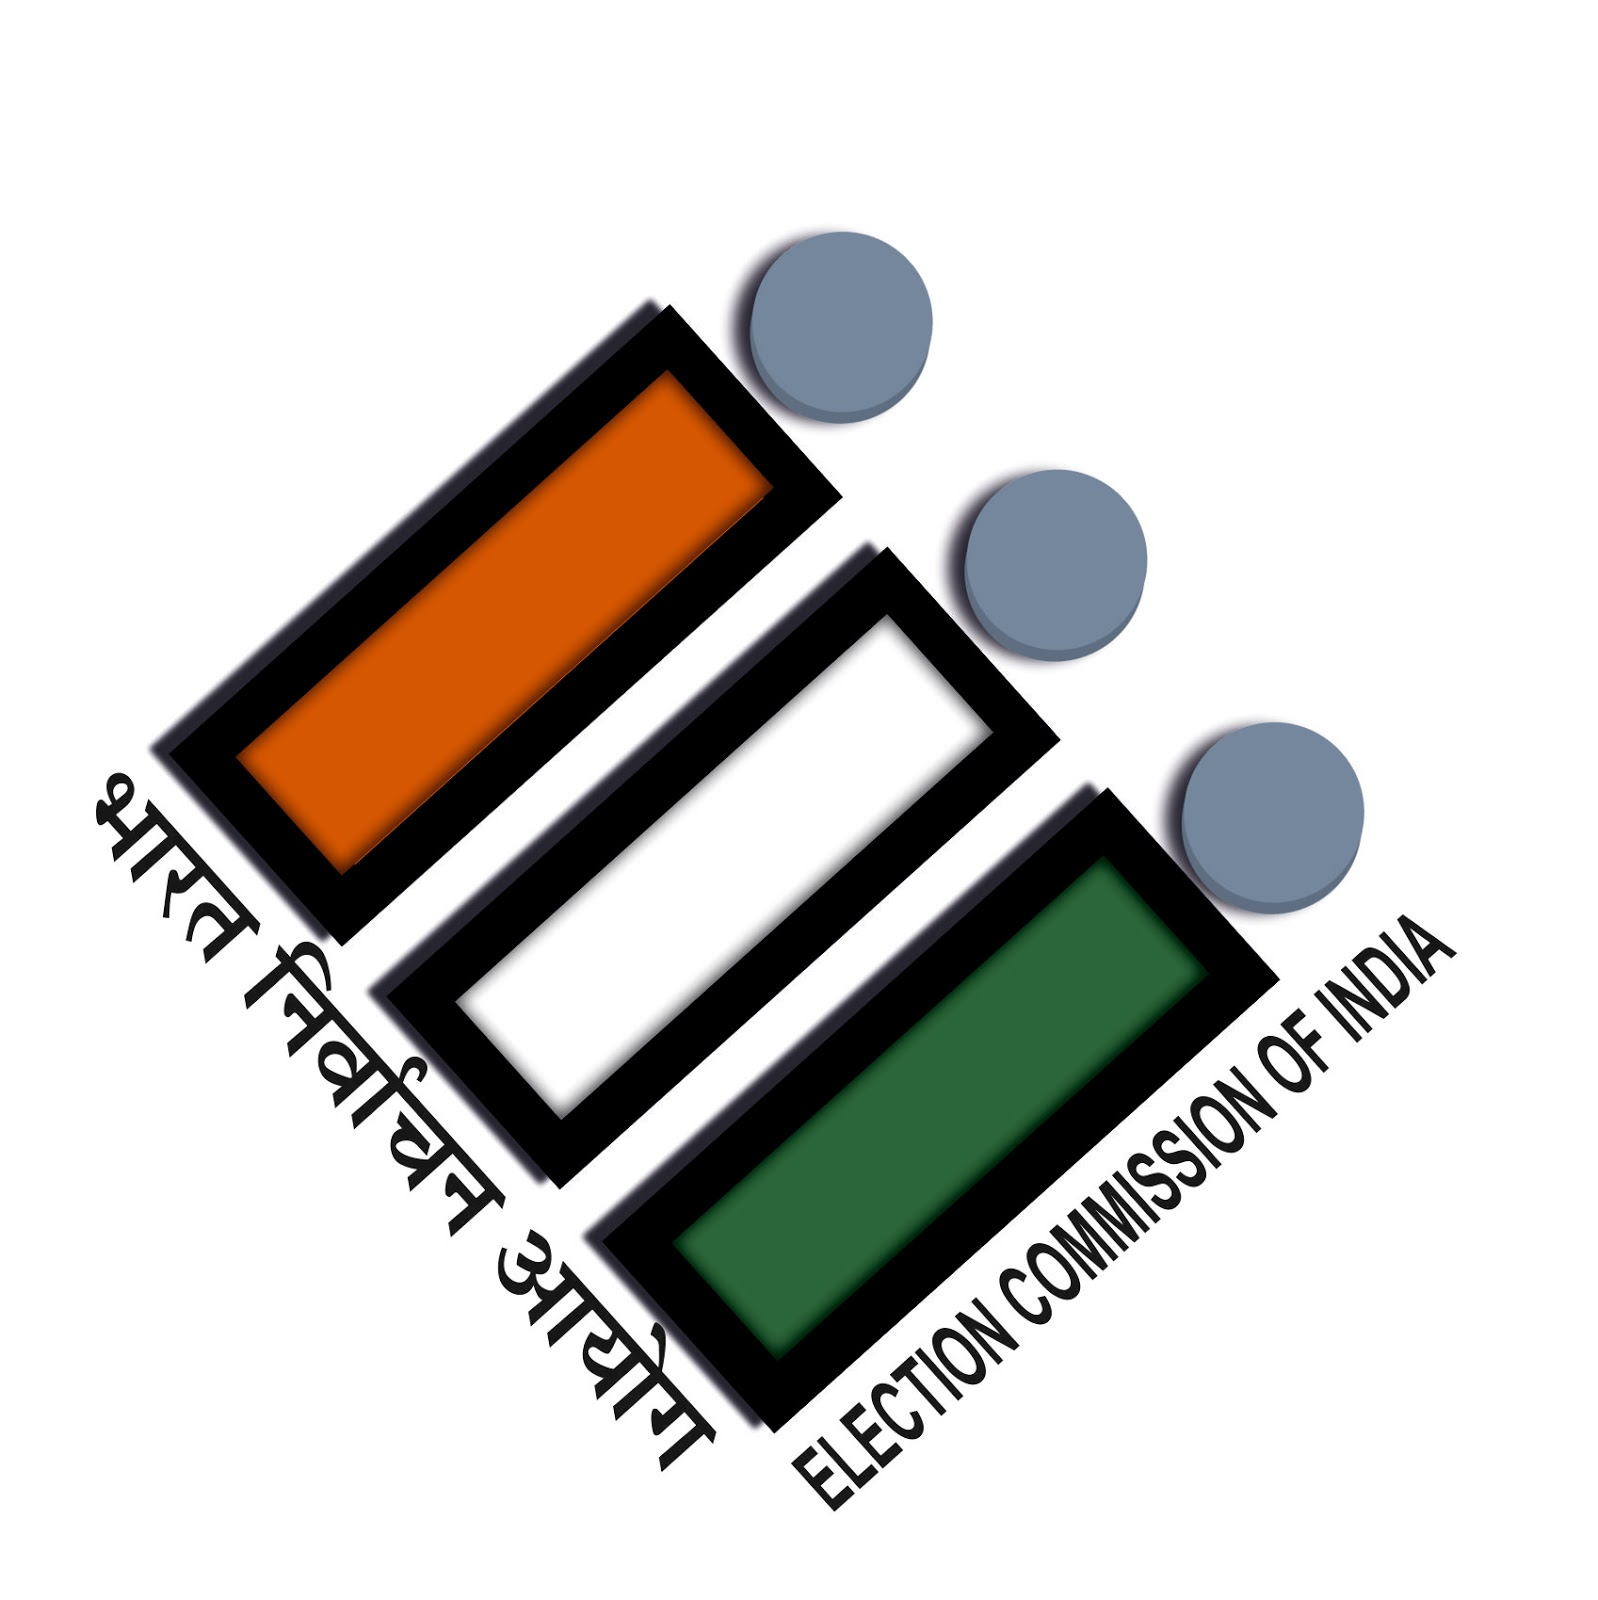 Election Commission of India Jobs